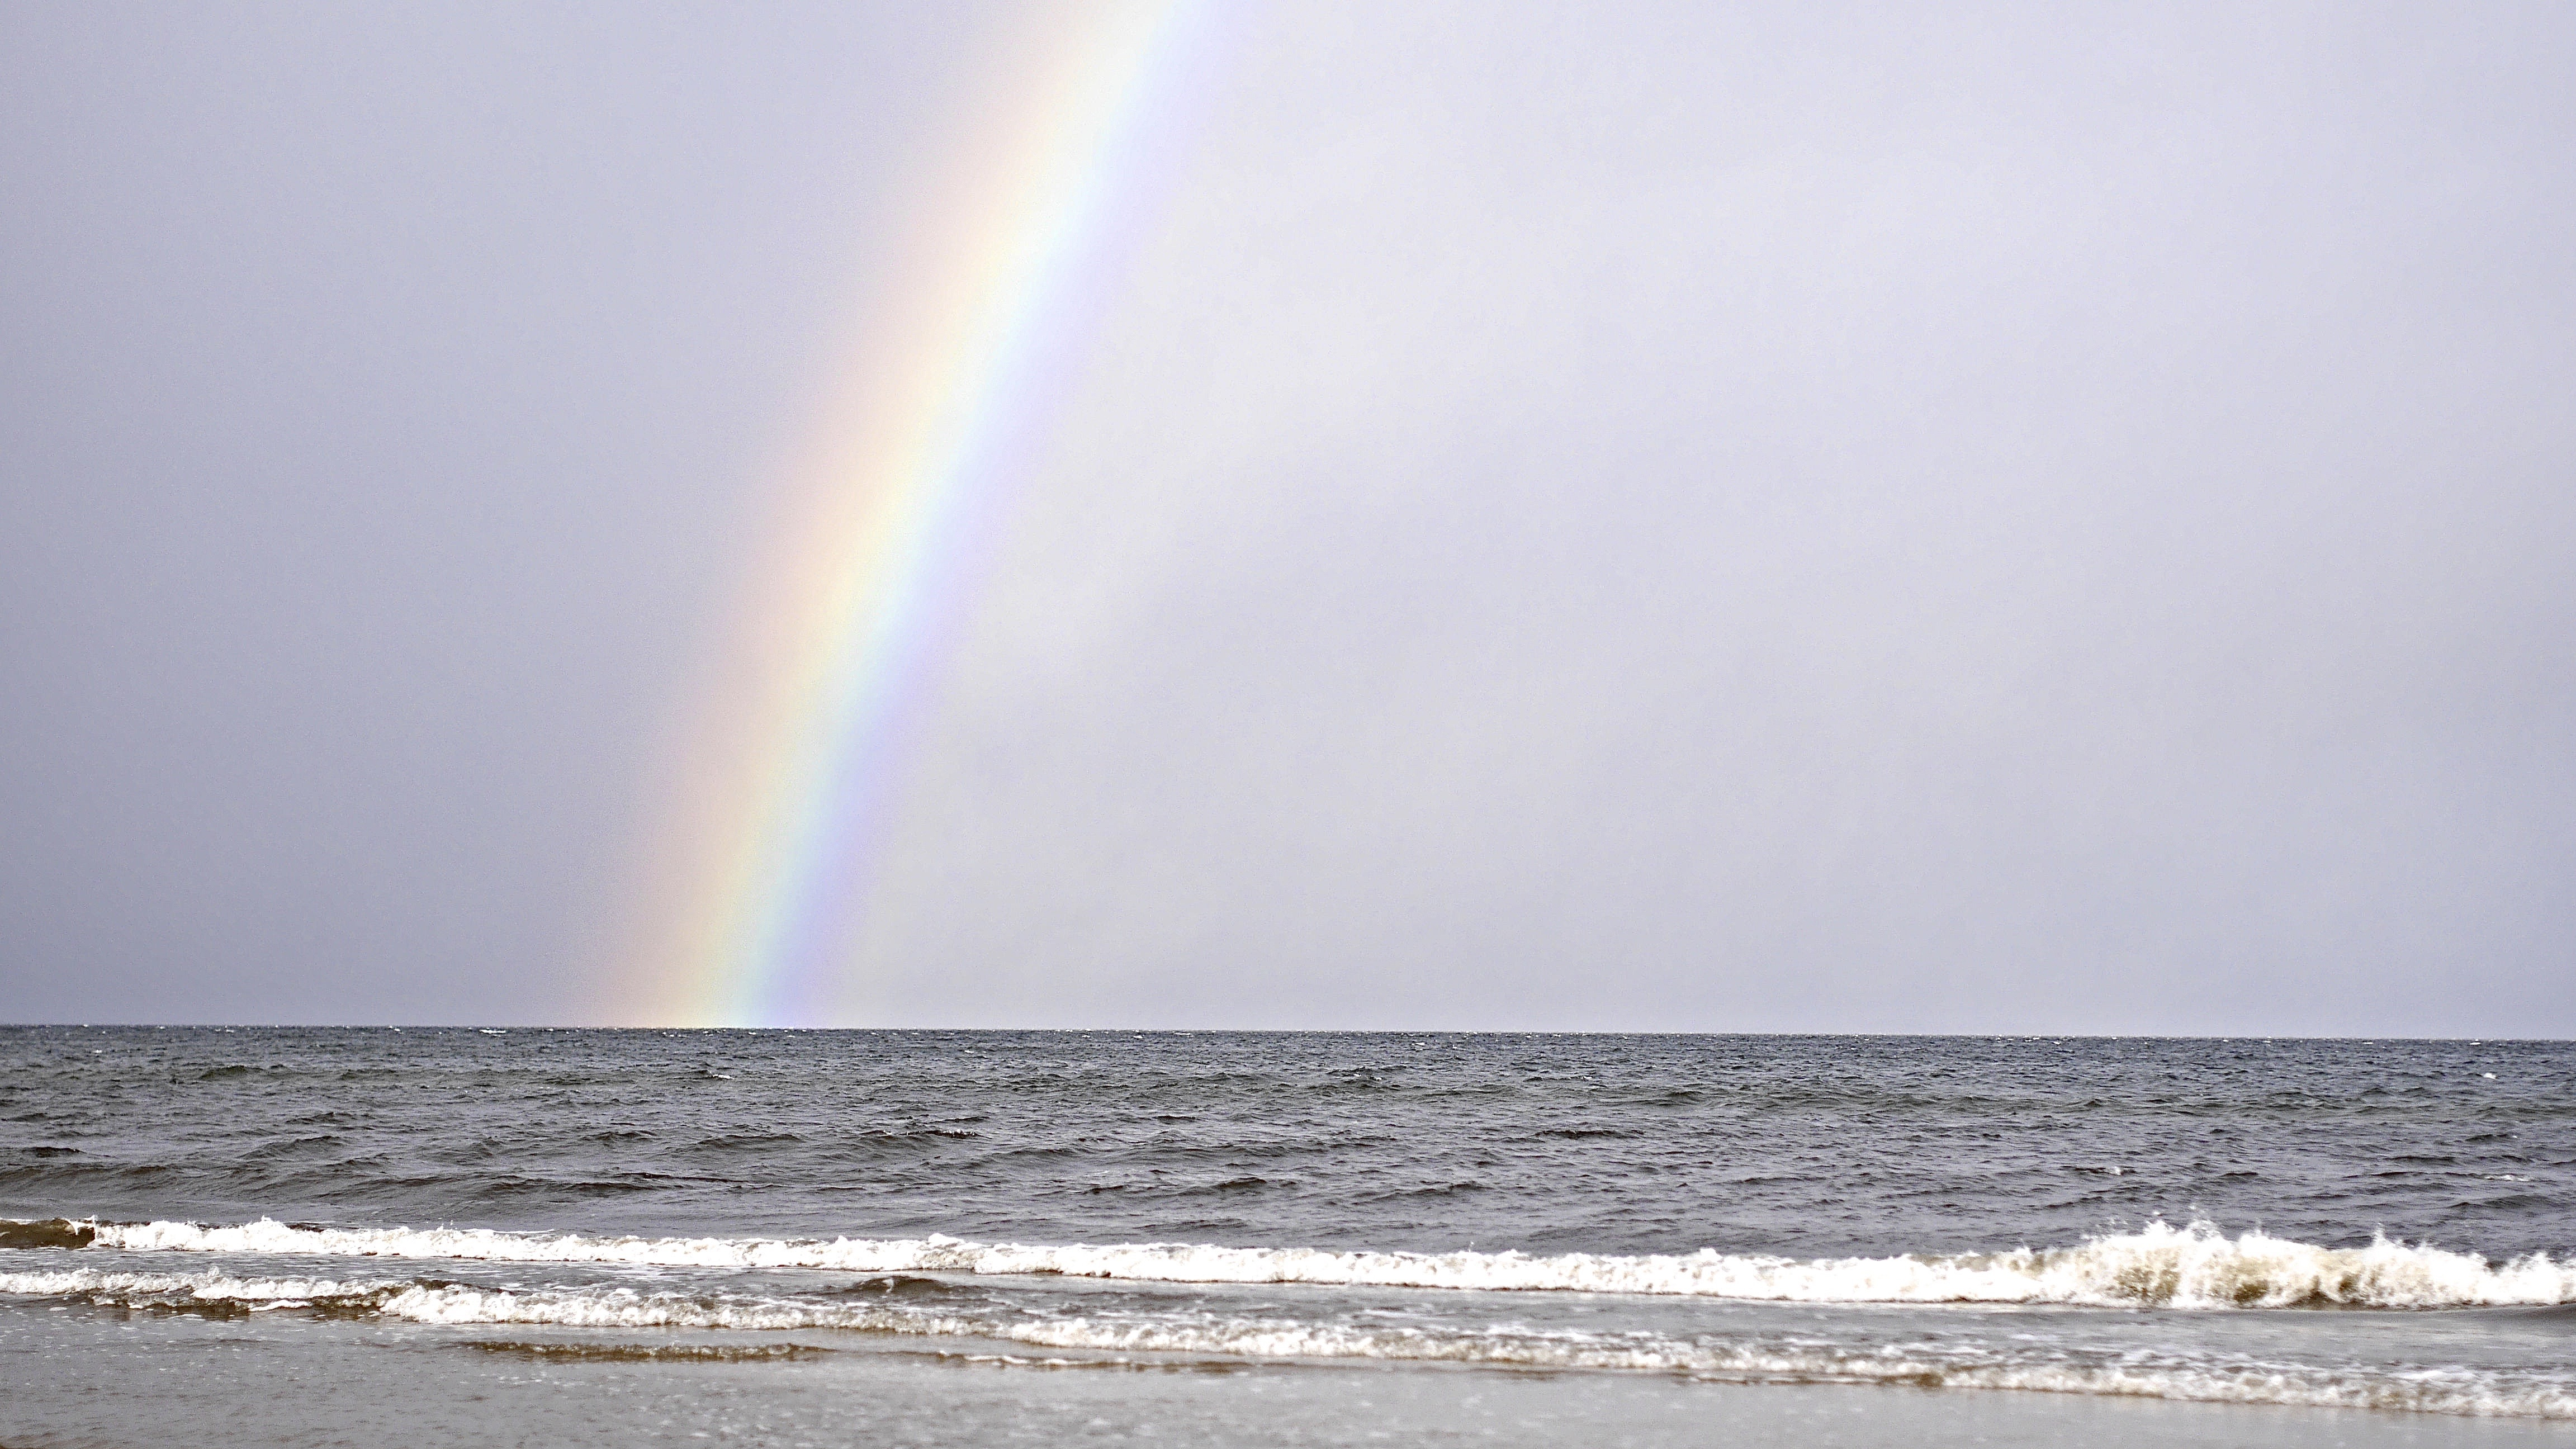 Rainbow at the Sea, Sea, Waves, Rainbow, Nature, HQ Photo